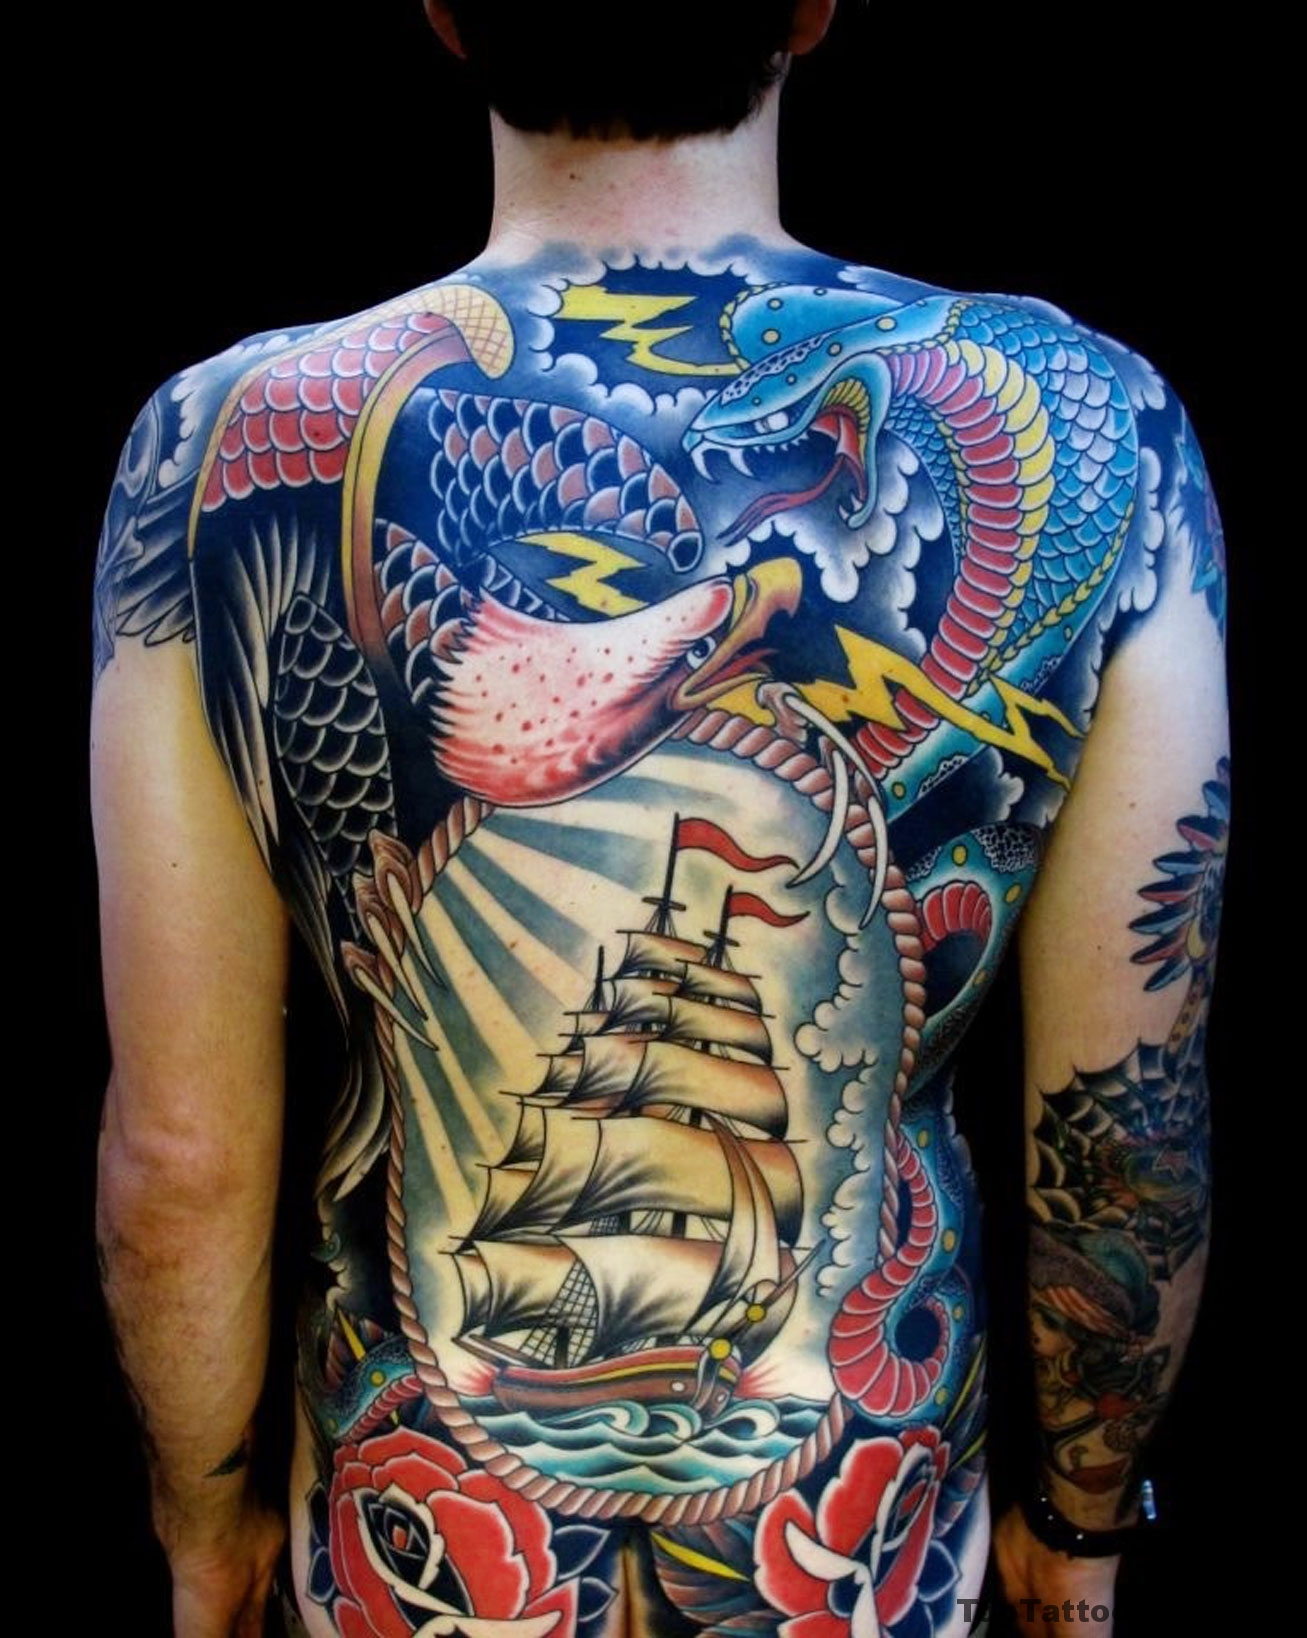 Awesome Fully Inked Back Tattoo Idea